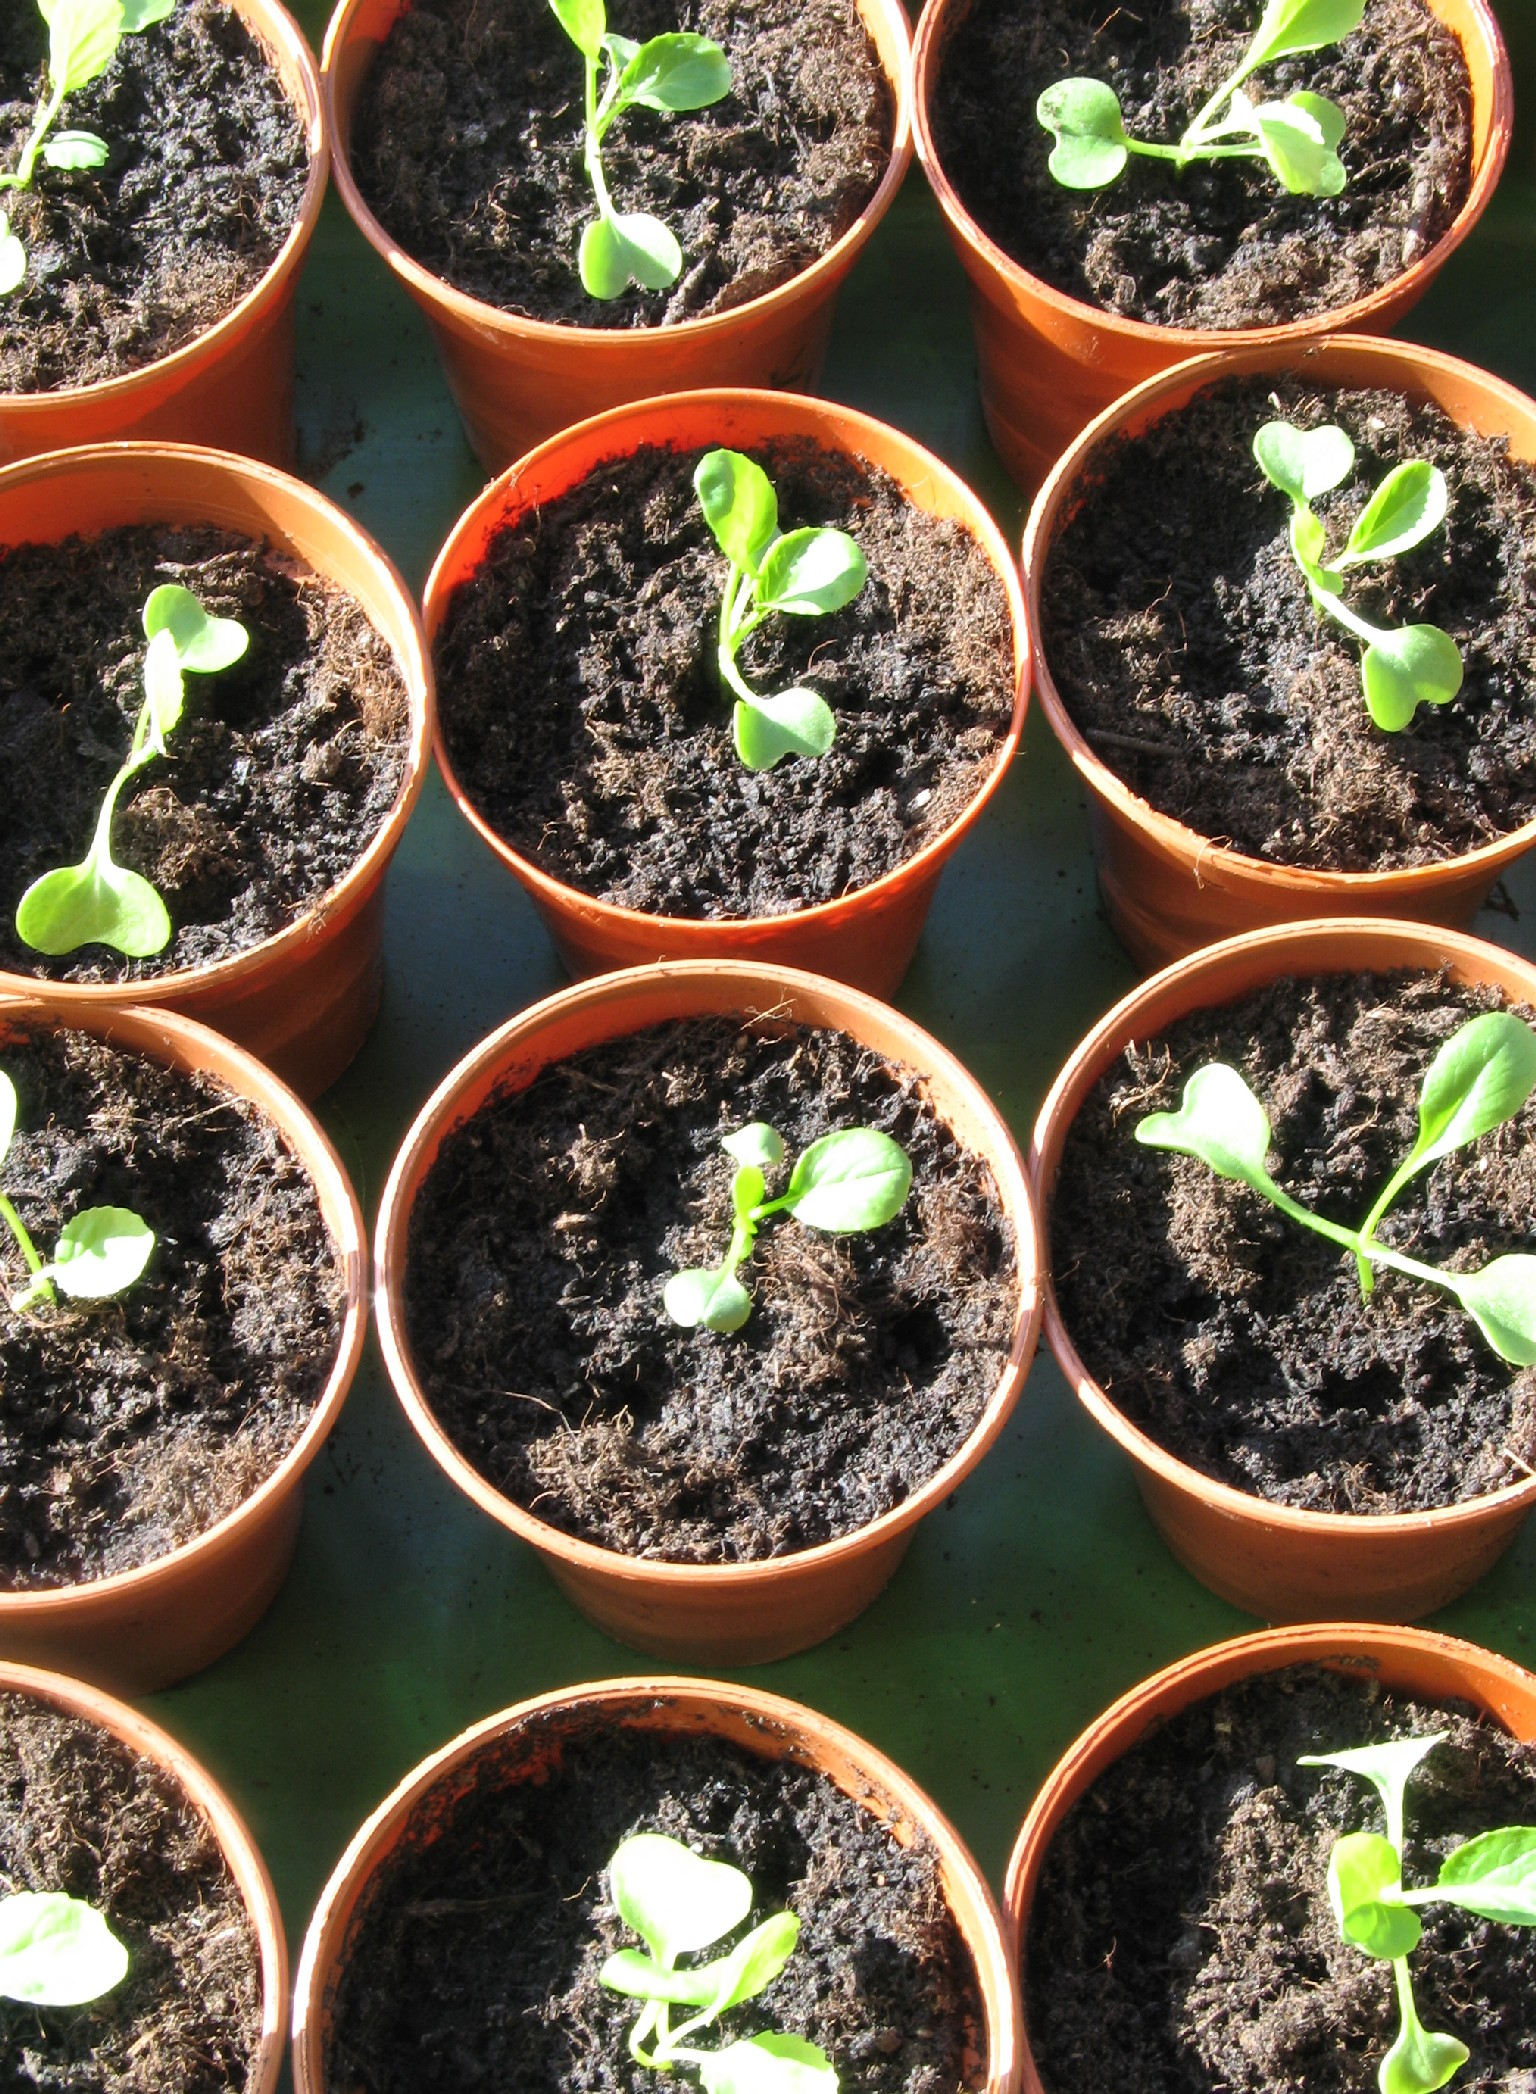 Seedling Cabbages